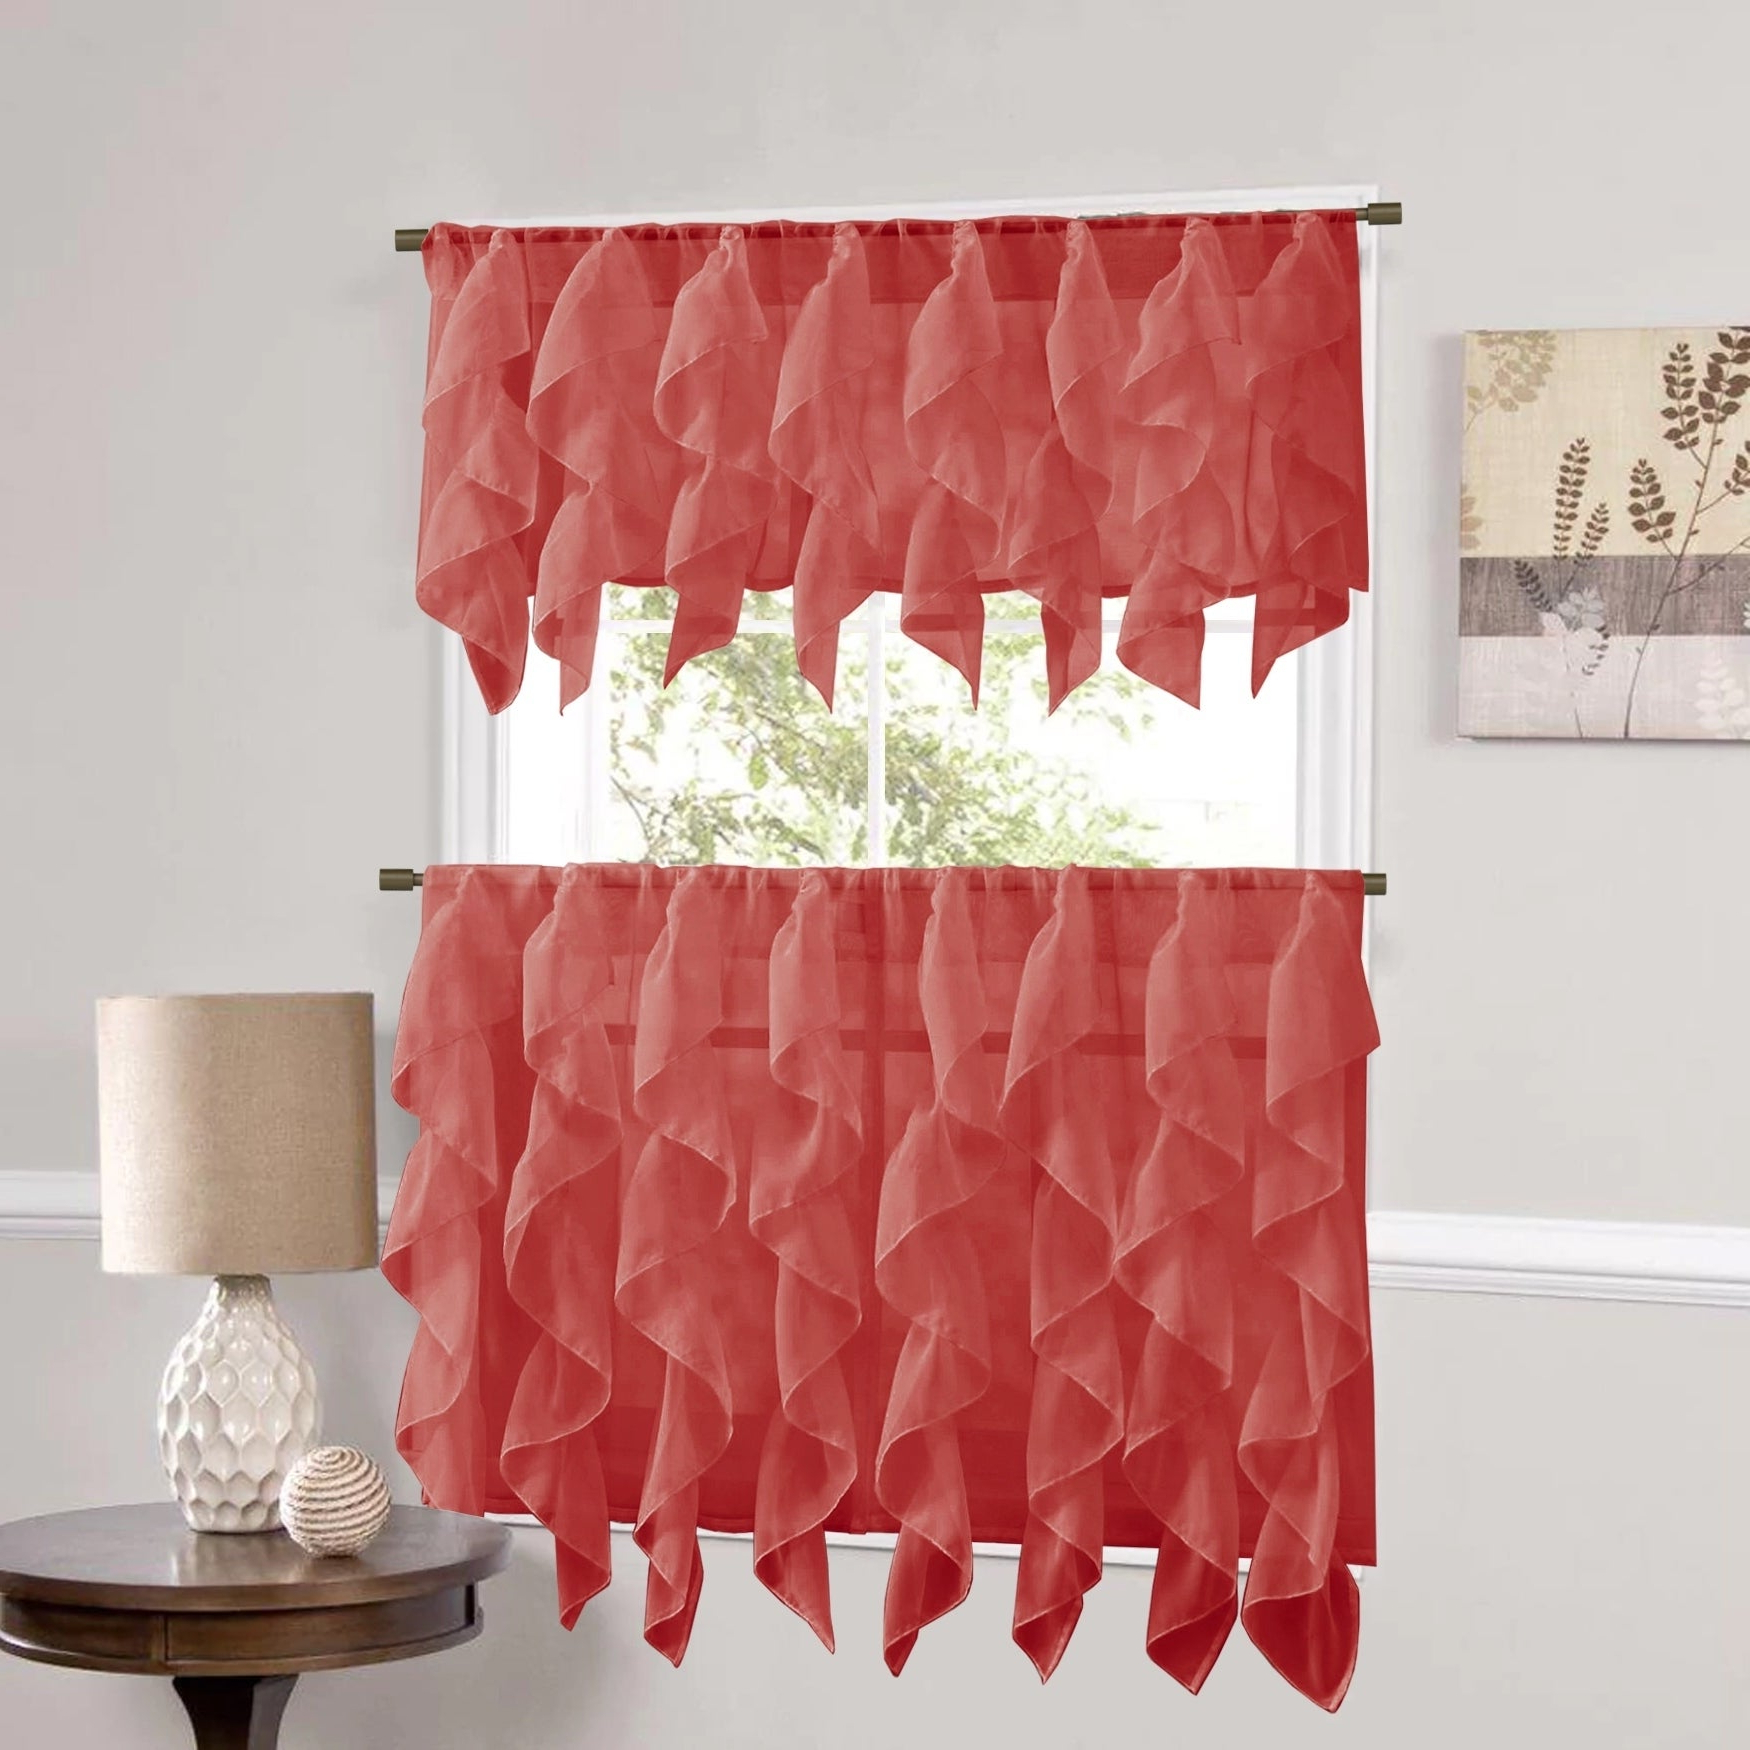 Vertical Ruffled Waterfall Valance And Curtain Tiers With Widely Used Sweet Home Collection Burgundy Vertical Ruffled Waterfall Valance And Curtain Tiers (View 4 of 20)